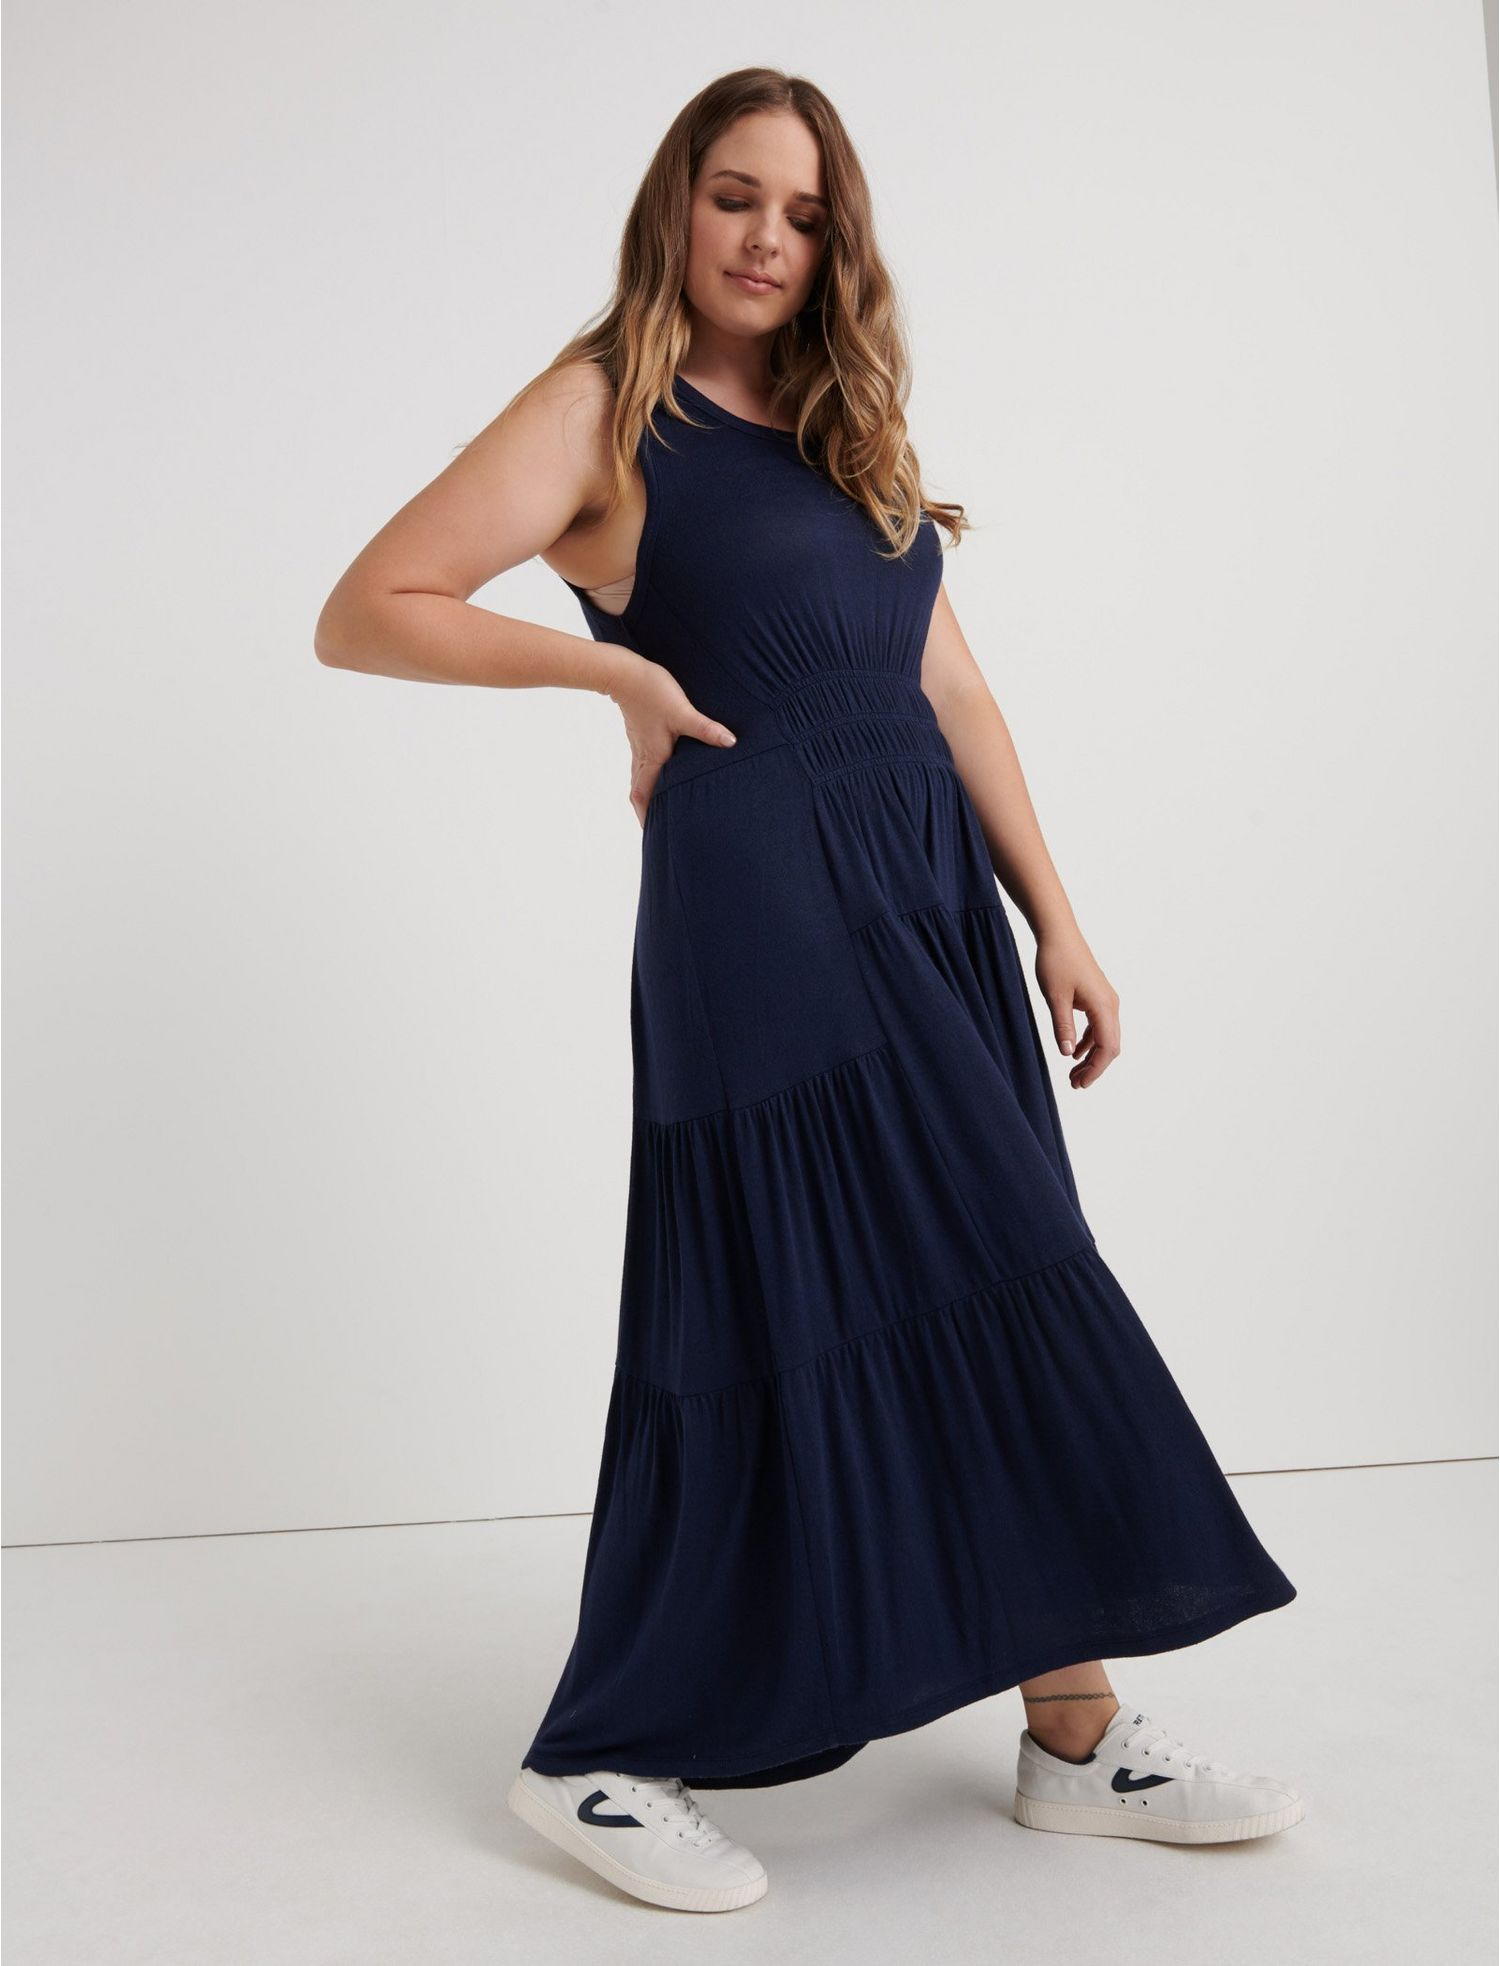 RUCHED-MAXI-DRESS-410 (1).jpeg